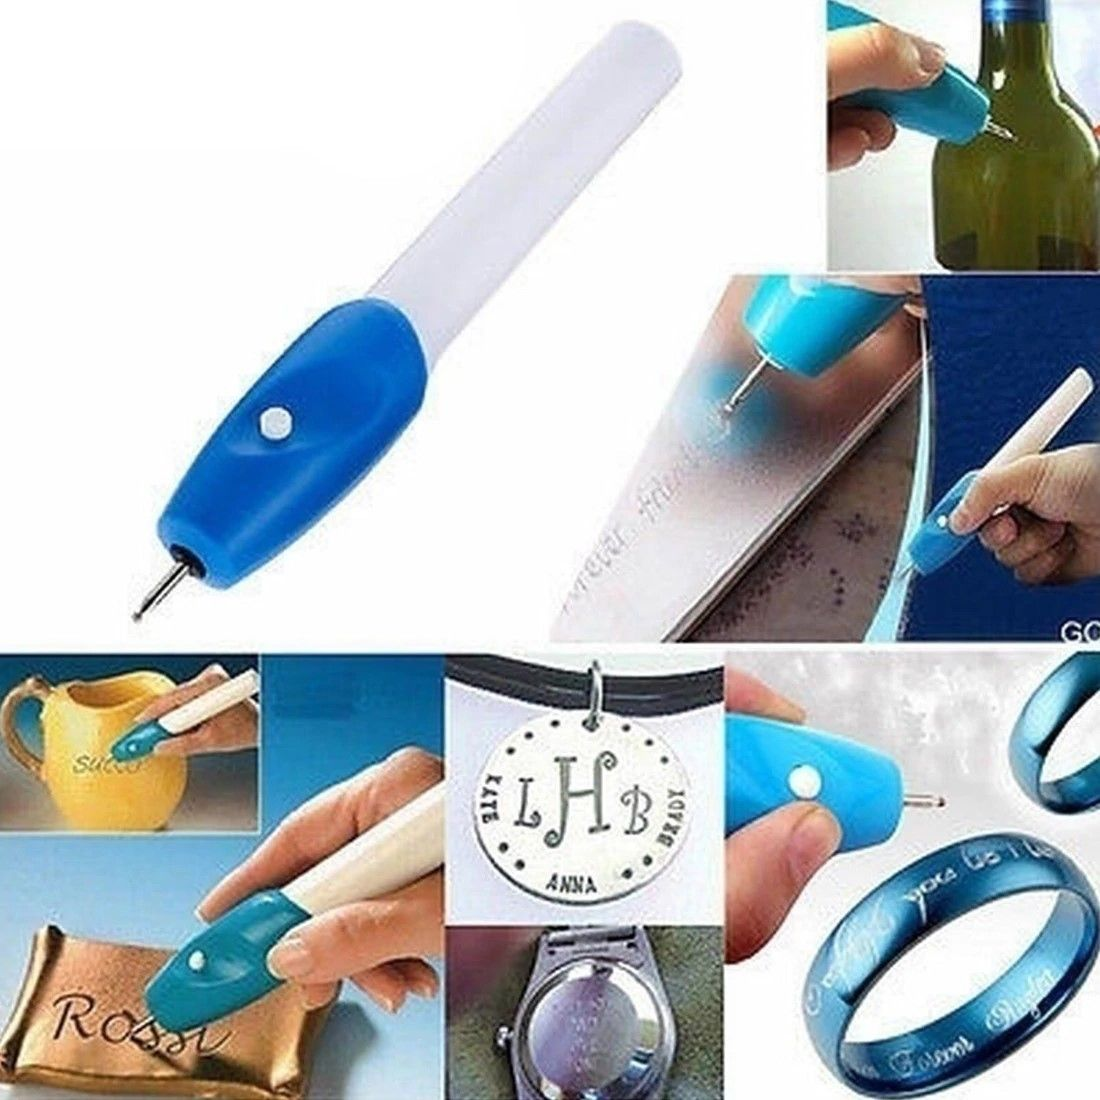 DIY Engraver Pen Electric Engraver for Jewelry Making Metal Glass with Diamond Tip Bits Electric Engraver Pen Engraving Tools